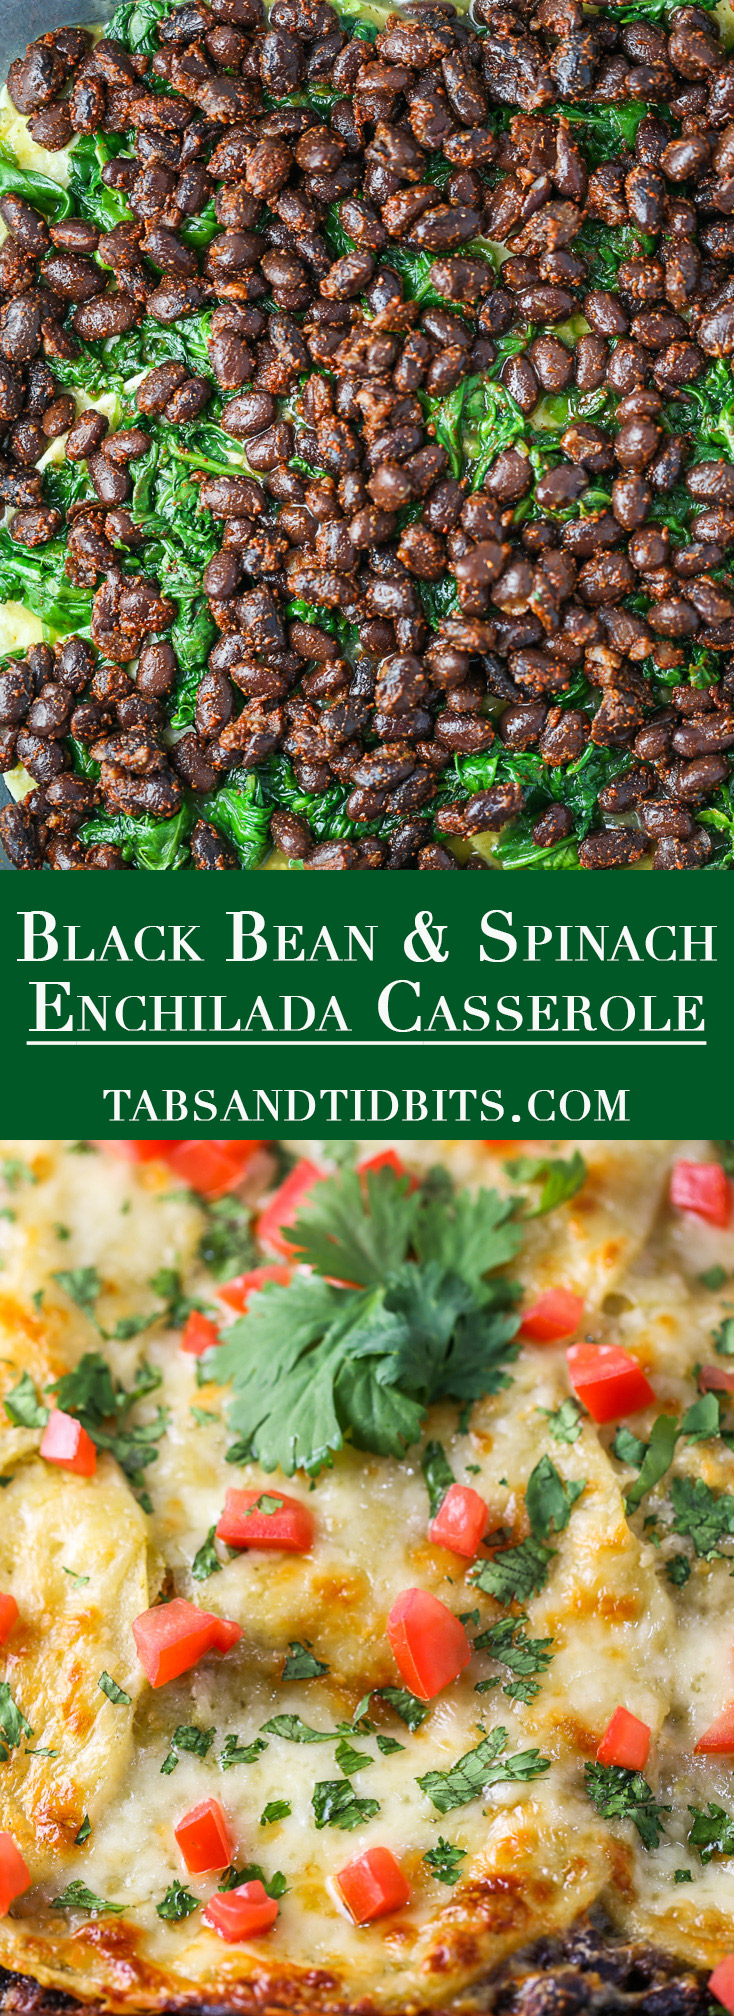 Hearty & full of flavor! No need to roll into enchiladas. Plus this dish can be prepped ahead of time for a time saver!